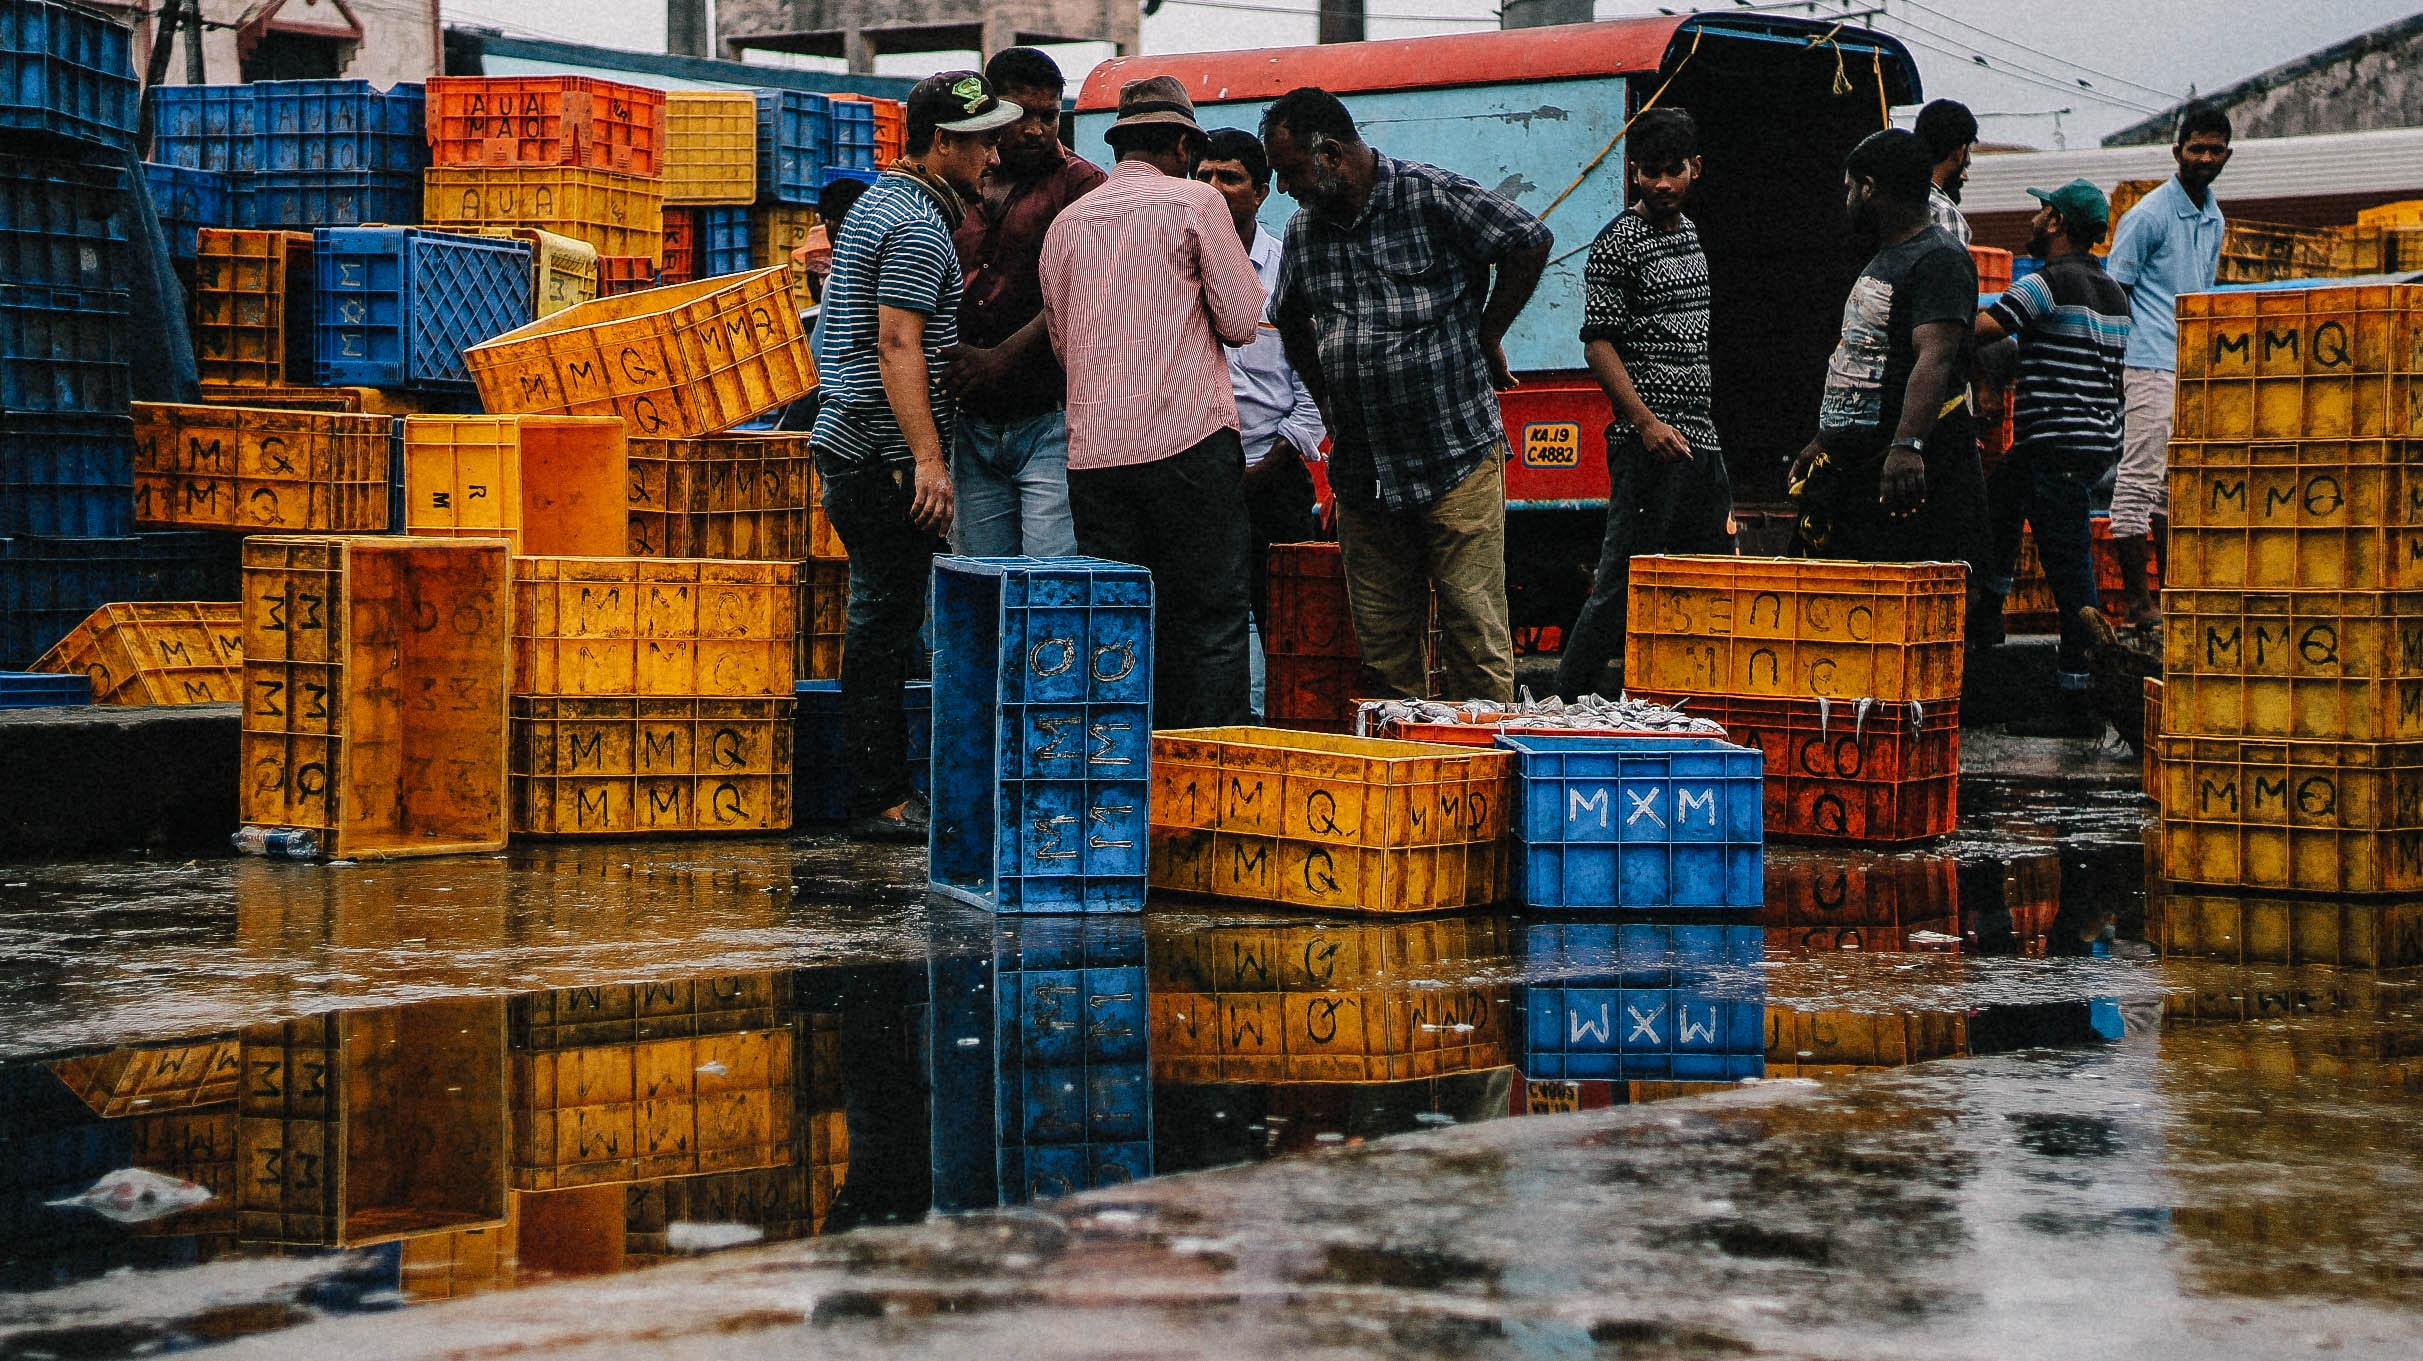 Men bargaining near crates with fish at a fish market